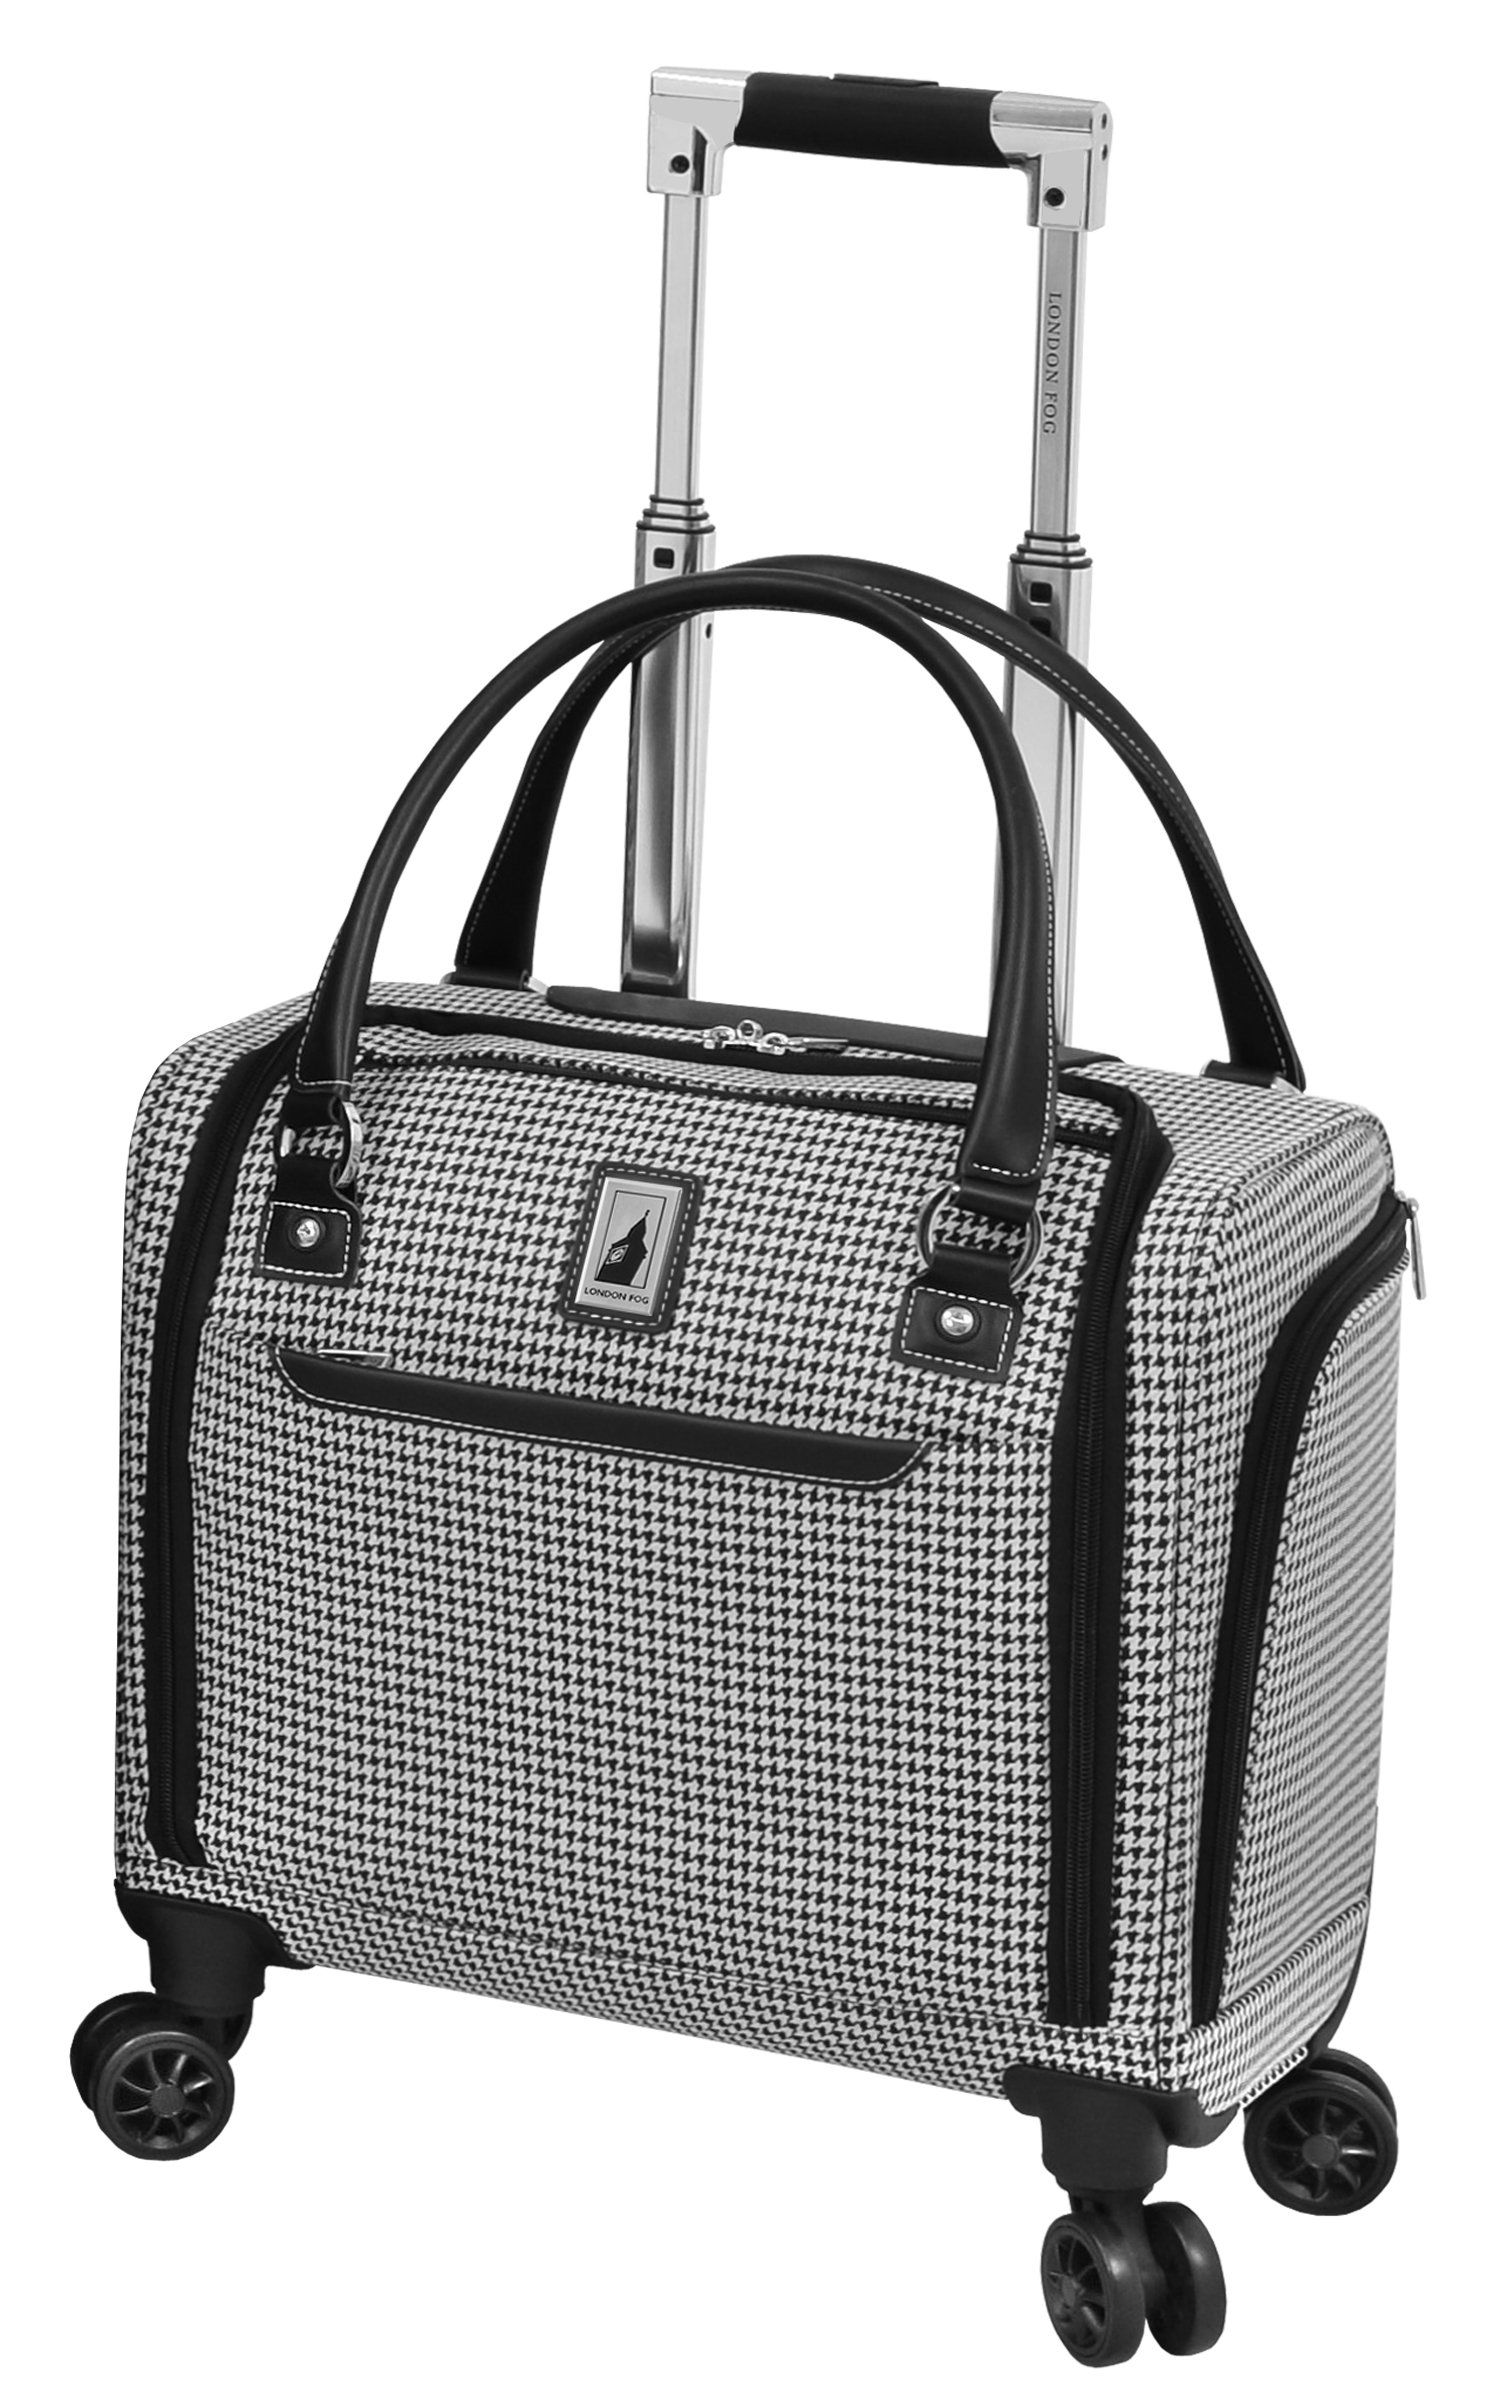 London Fog Cambridge II 15'' 8 Wheel Under Seat Bag, Black White Houndstooth